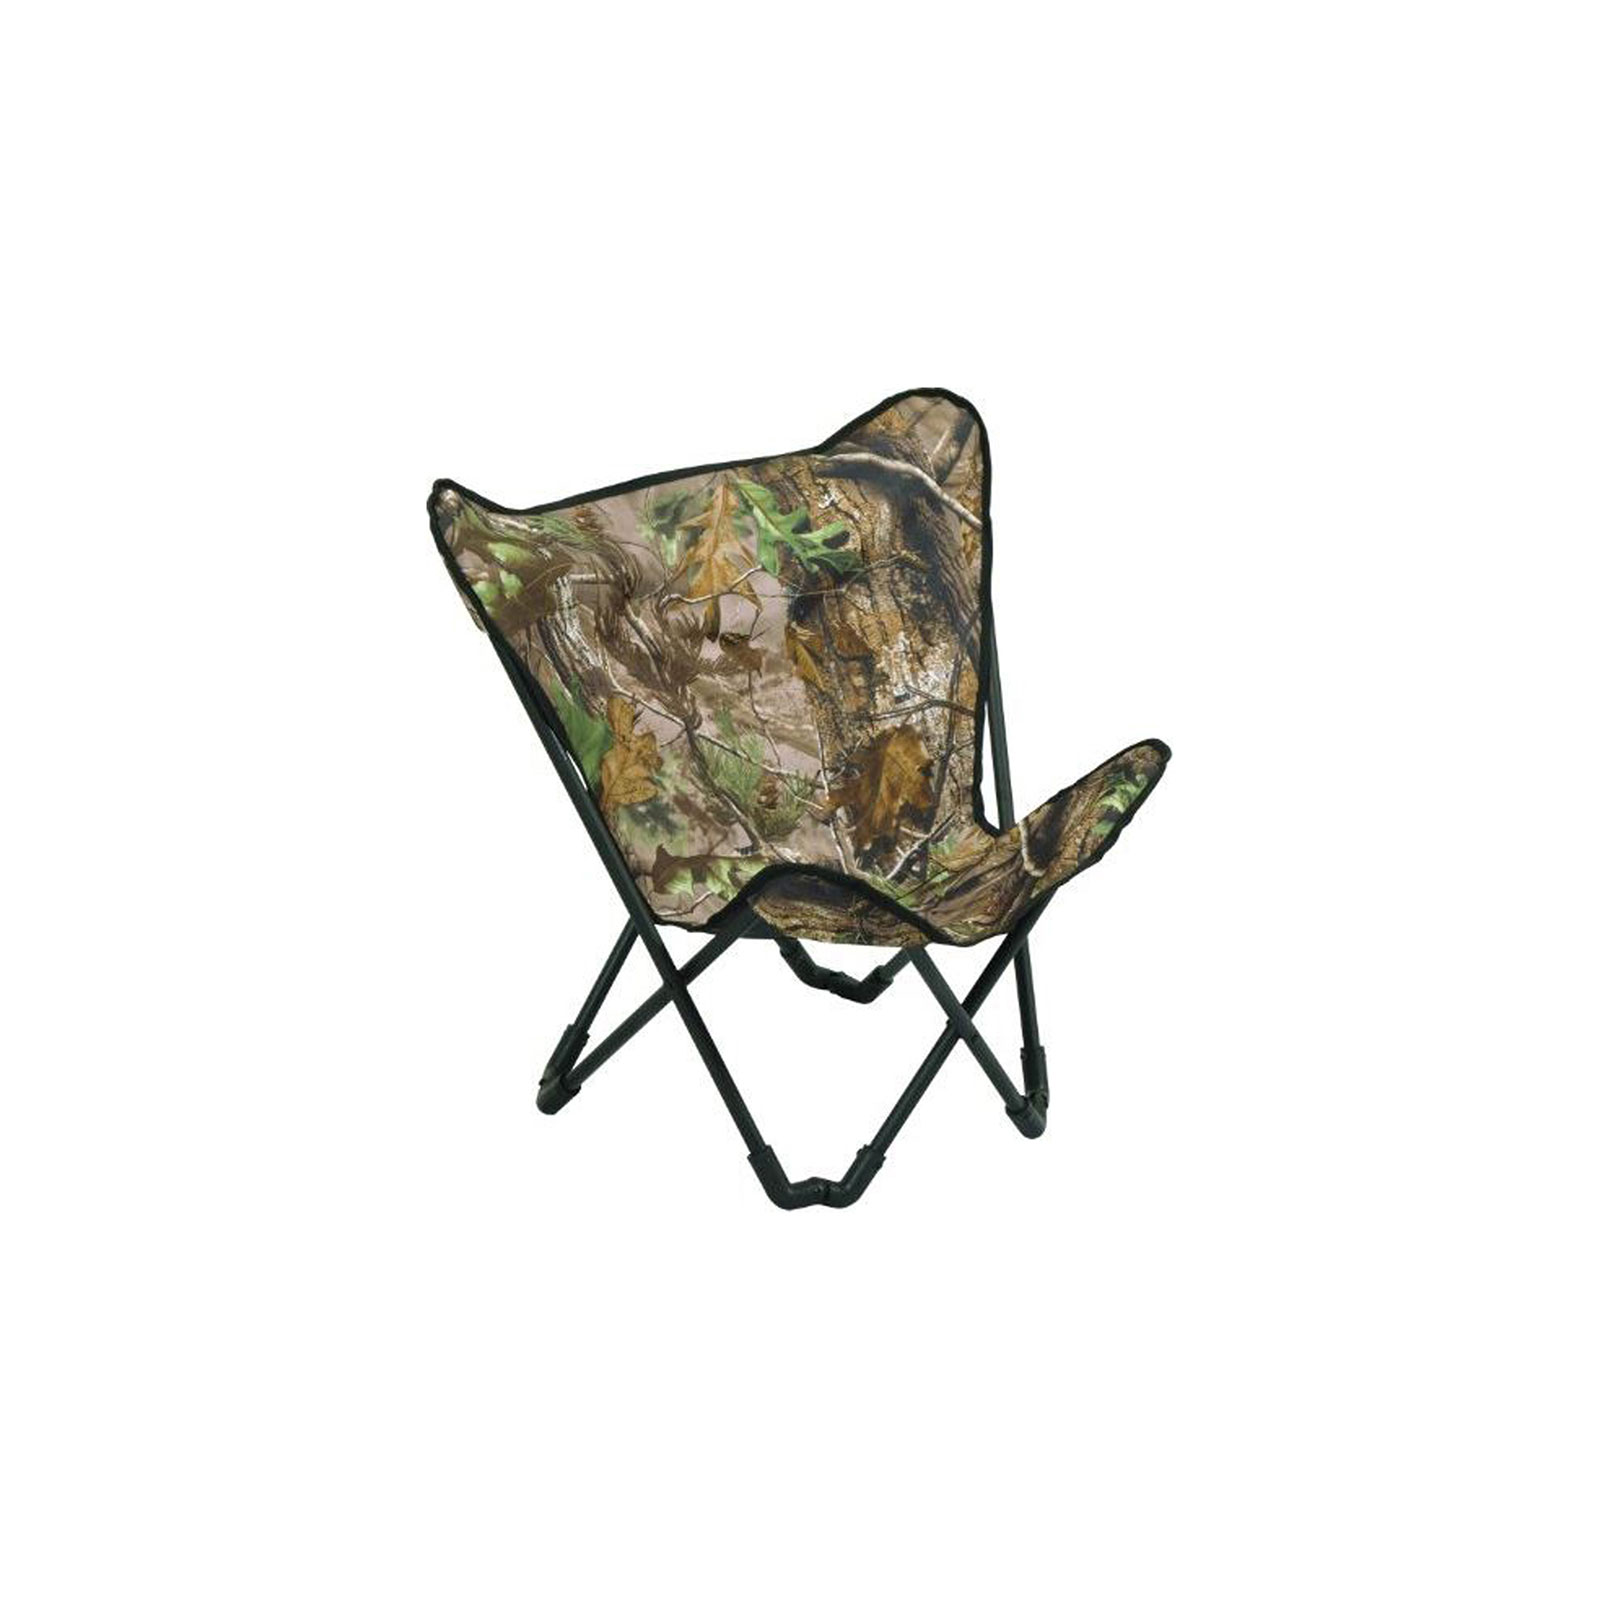 ground blind chair saarinen executive ameristep 3rg1a007 turkey stopper